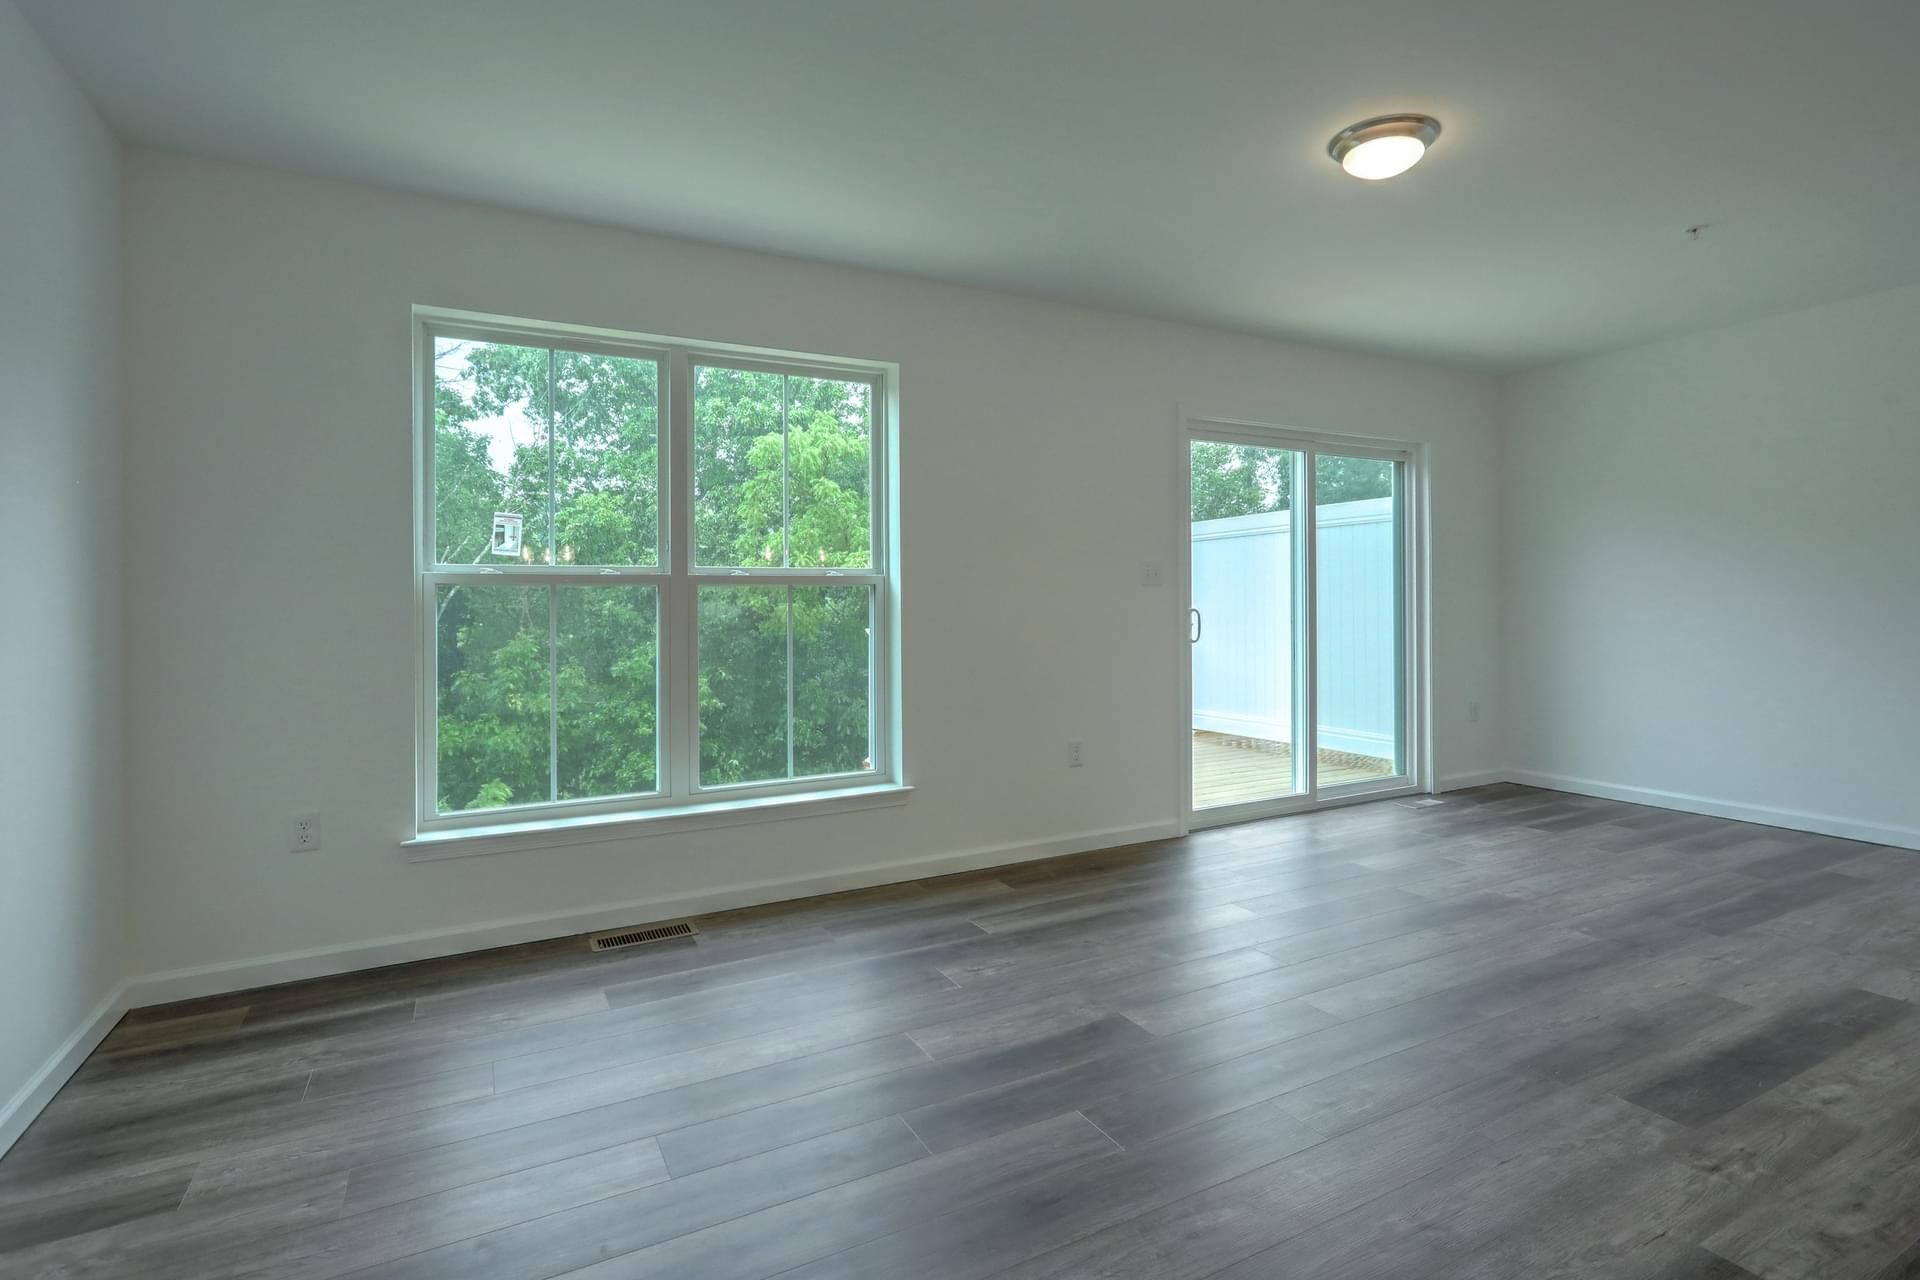 3br New Home in Elverson, PA